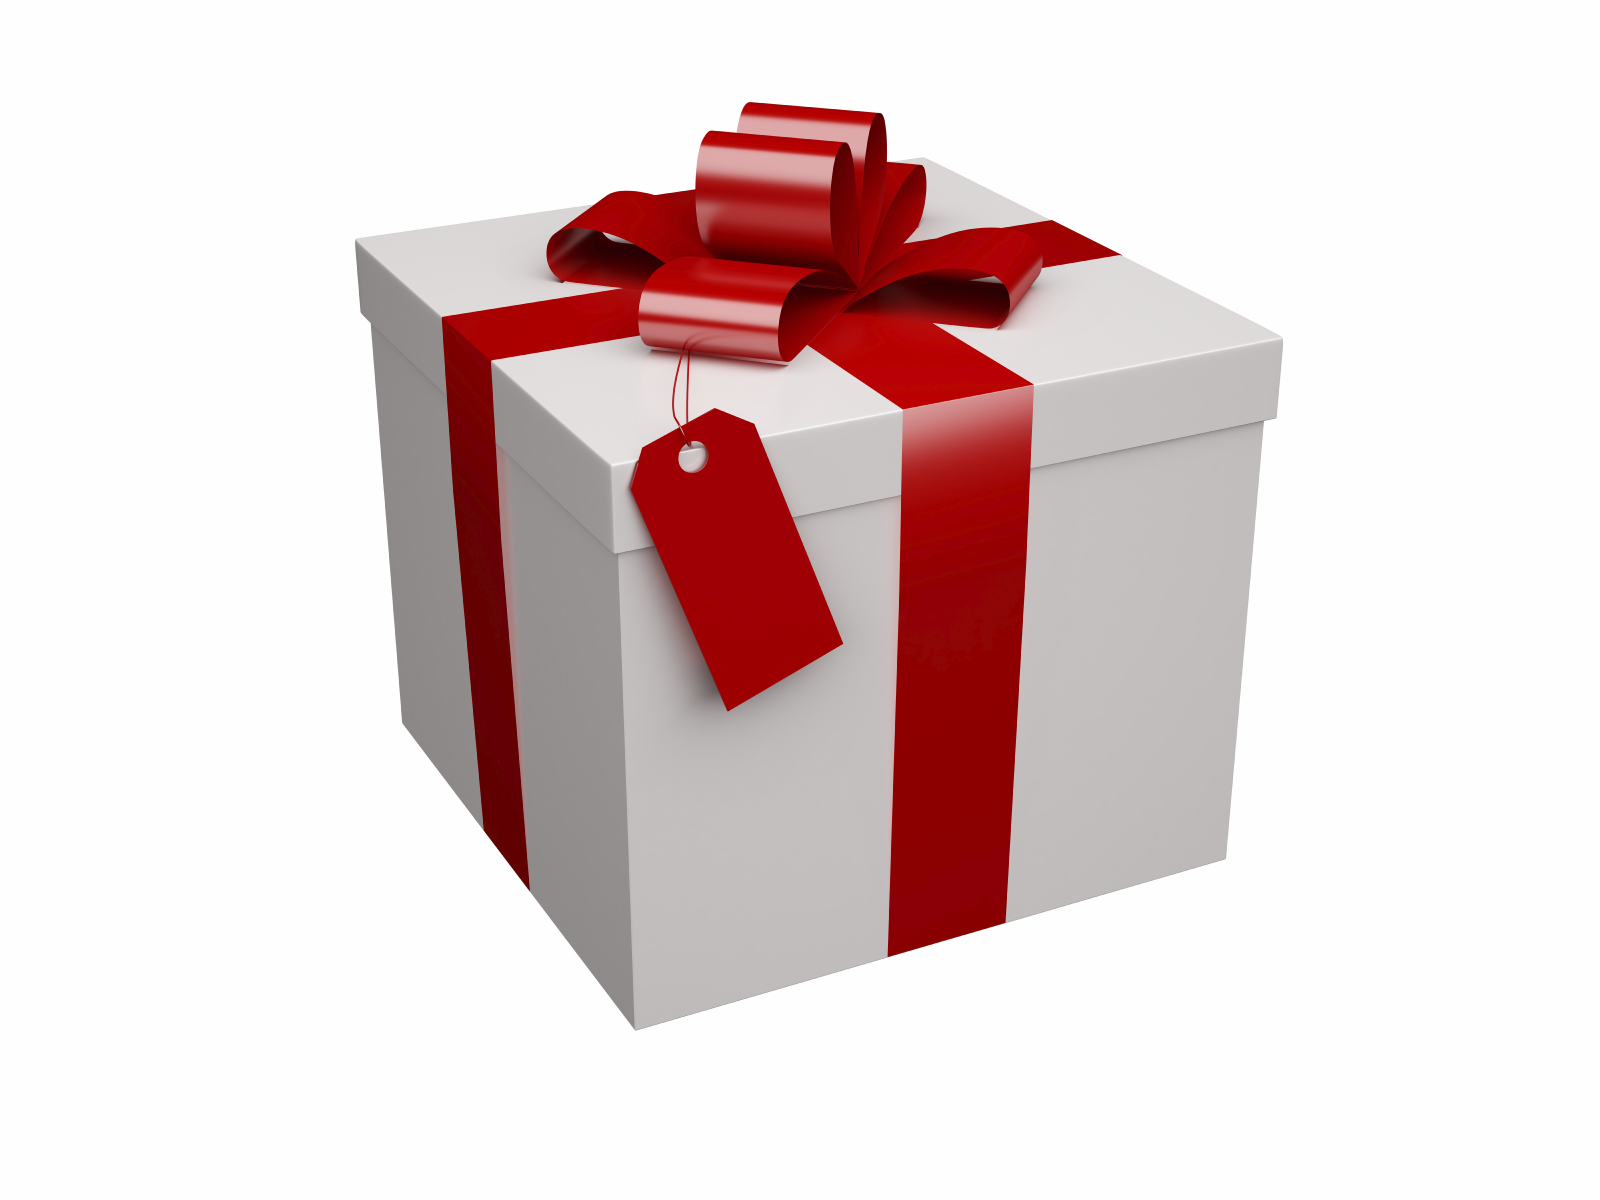 what type of gift givers are you thinking of gift